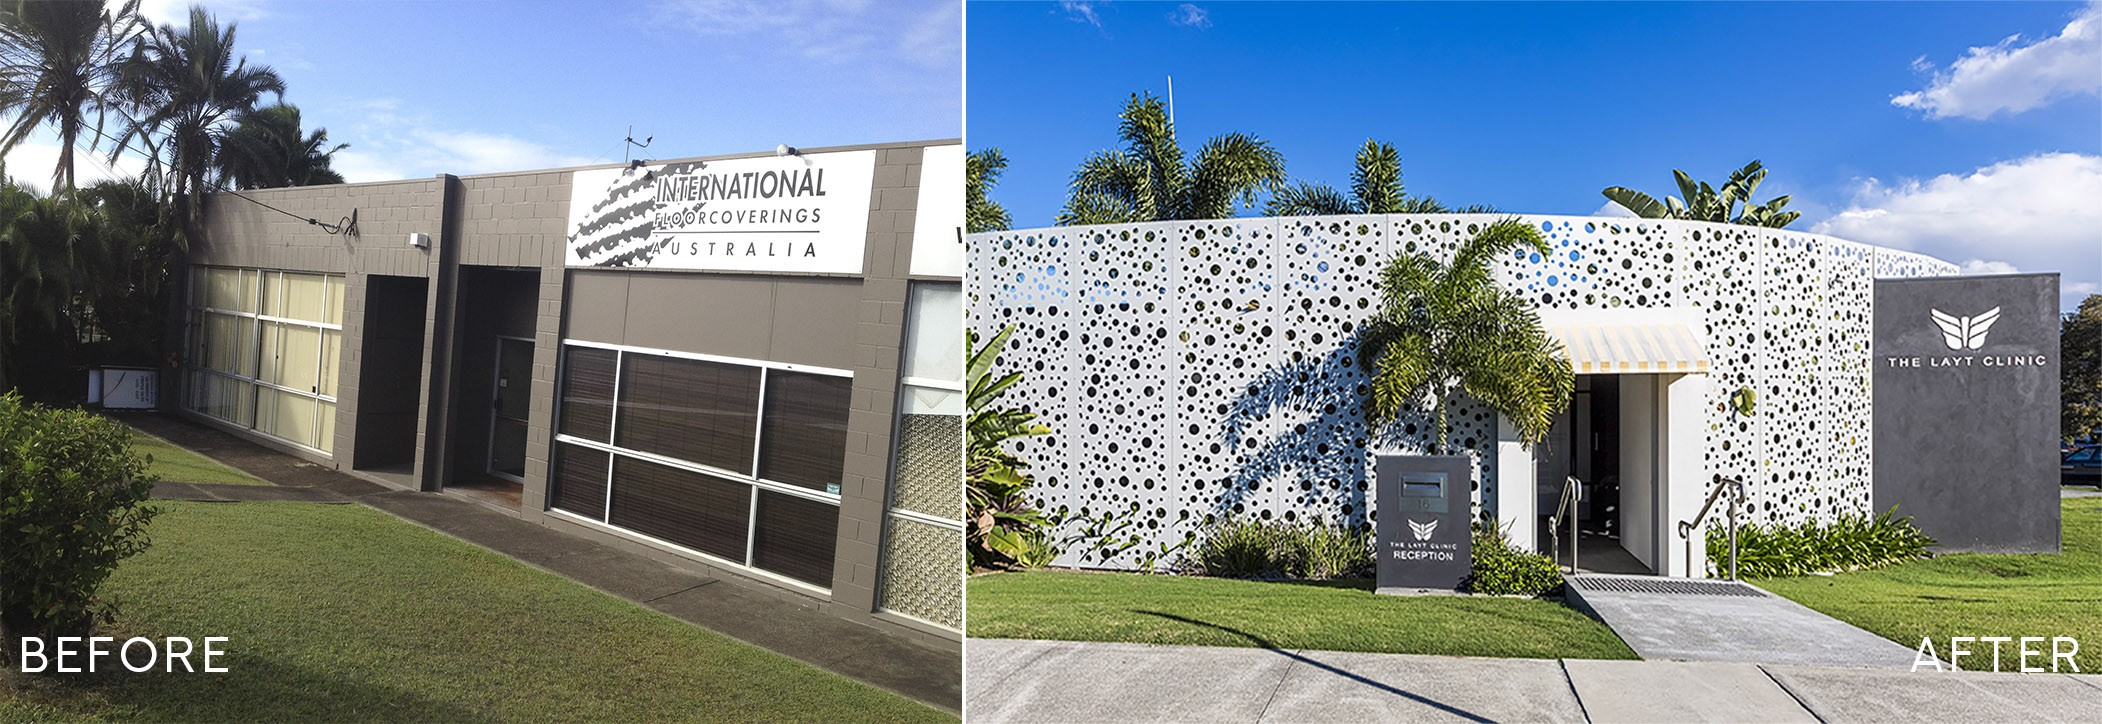 The Layt Clinic Before and After.jpg Architects Gold Coast